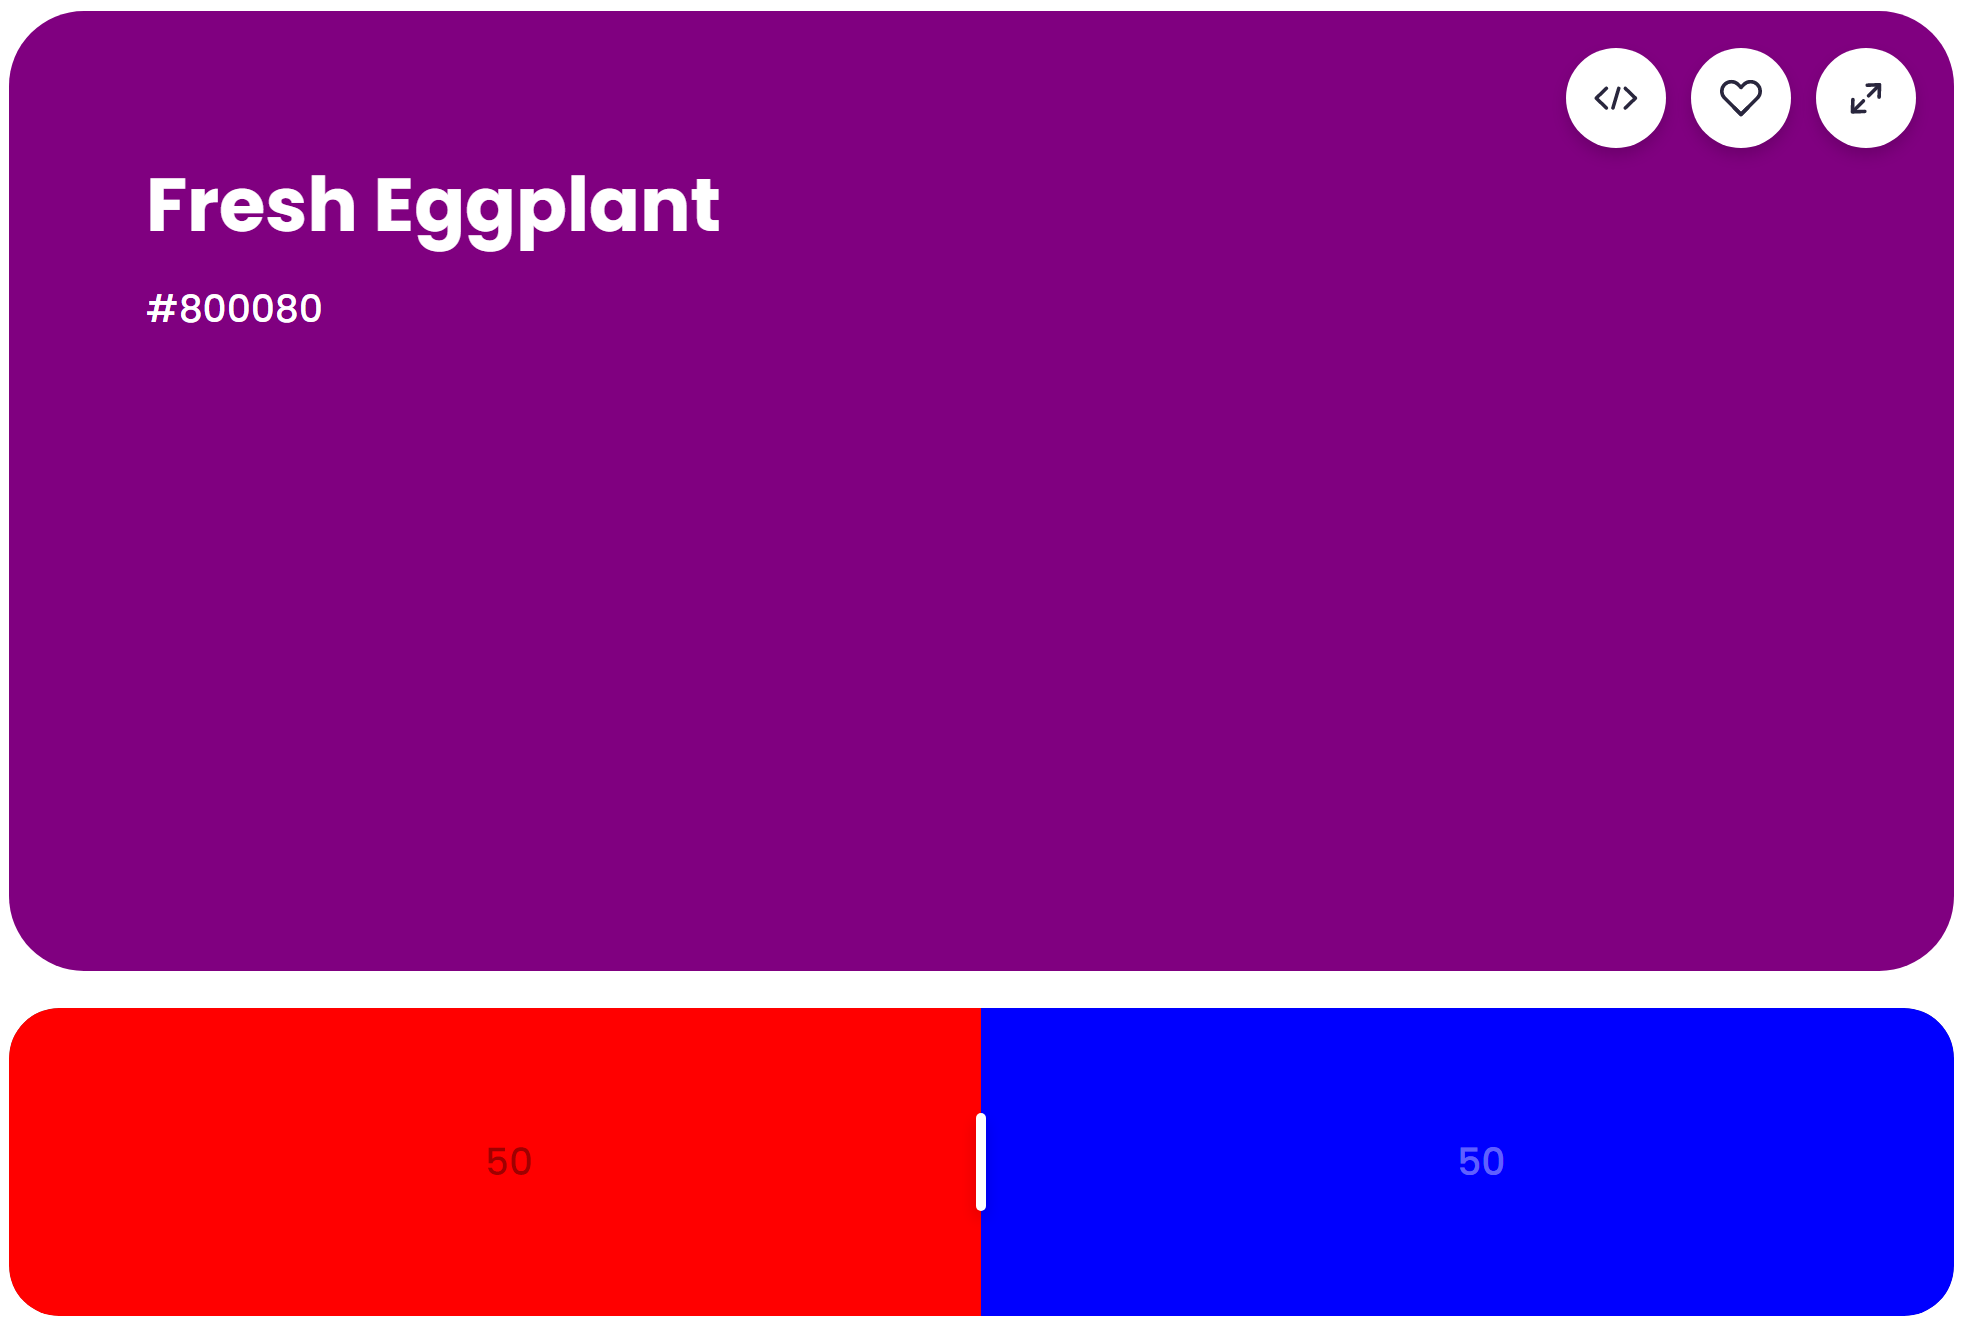 What Does Red and Blue Make? Mixing result of 50% red and 50% blue: Fresh Eggplant